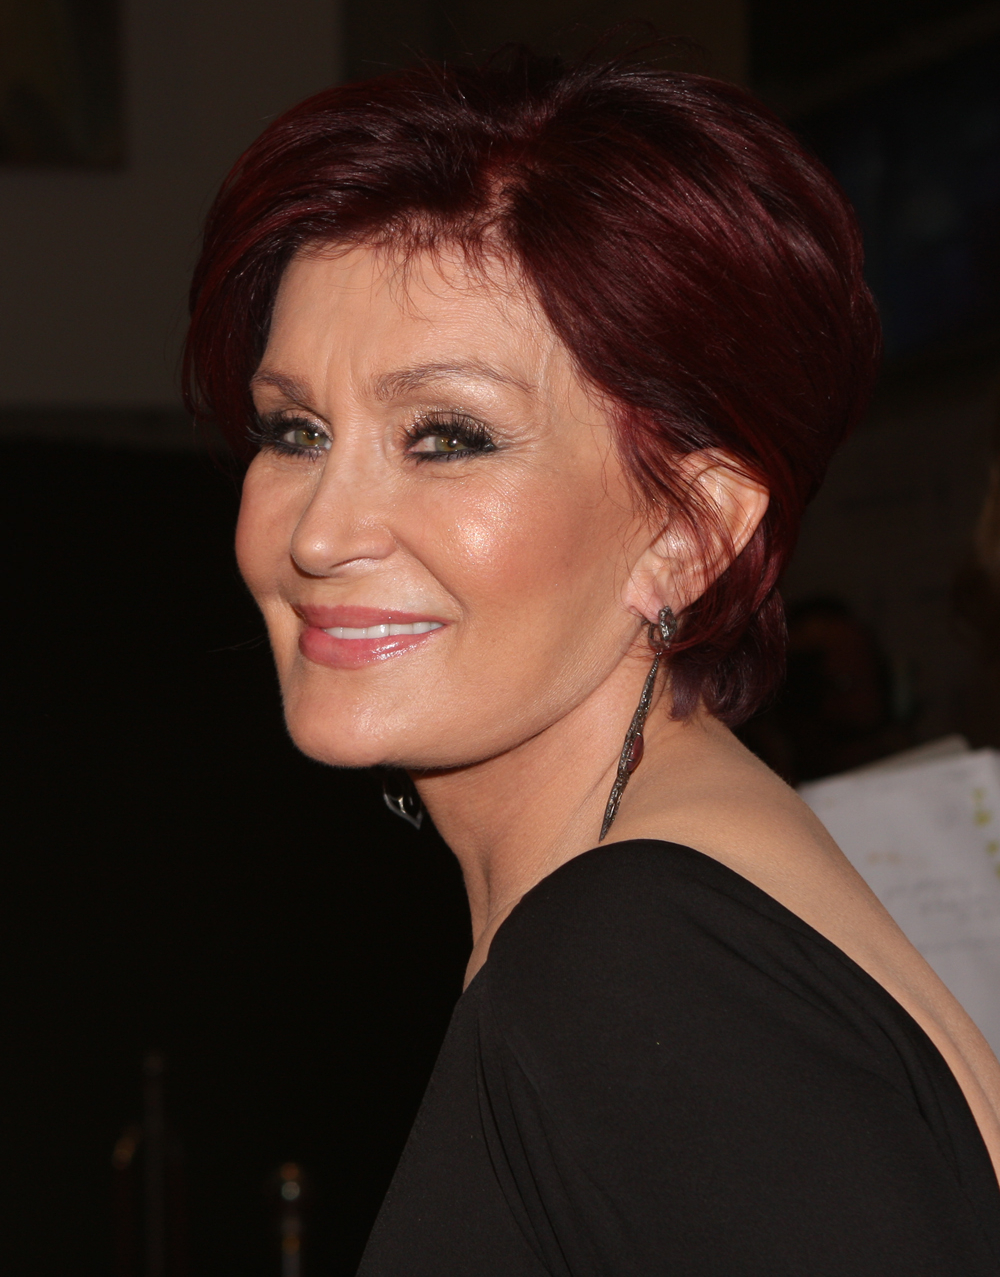 http://upload.wikimedia.org/wikipedia/commons/9/9d/Sharon_Osbourne_2,_2012.jpg